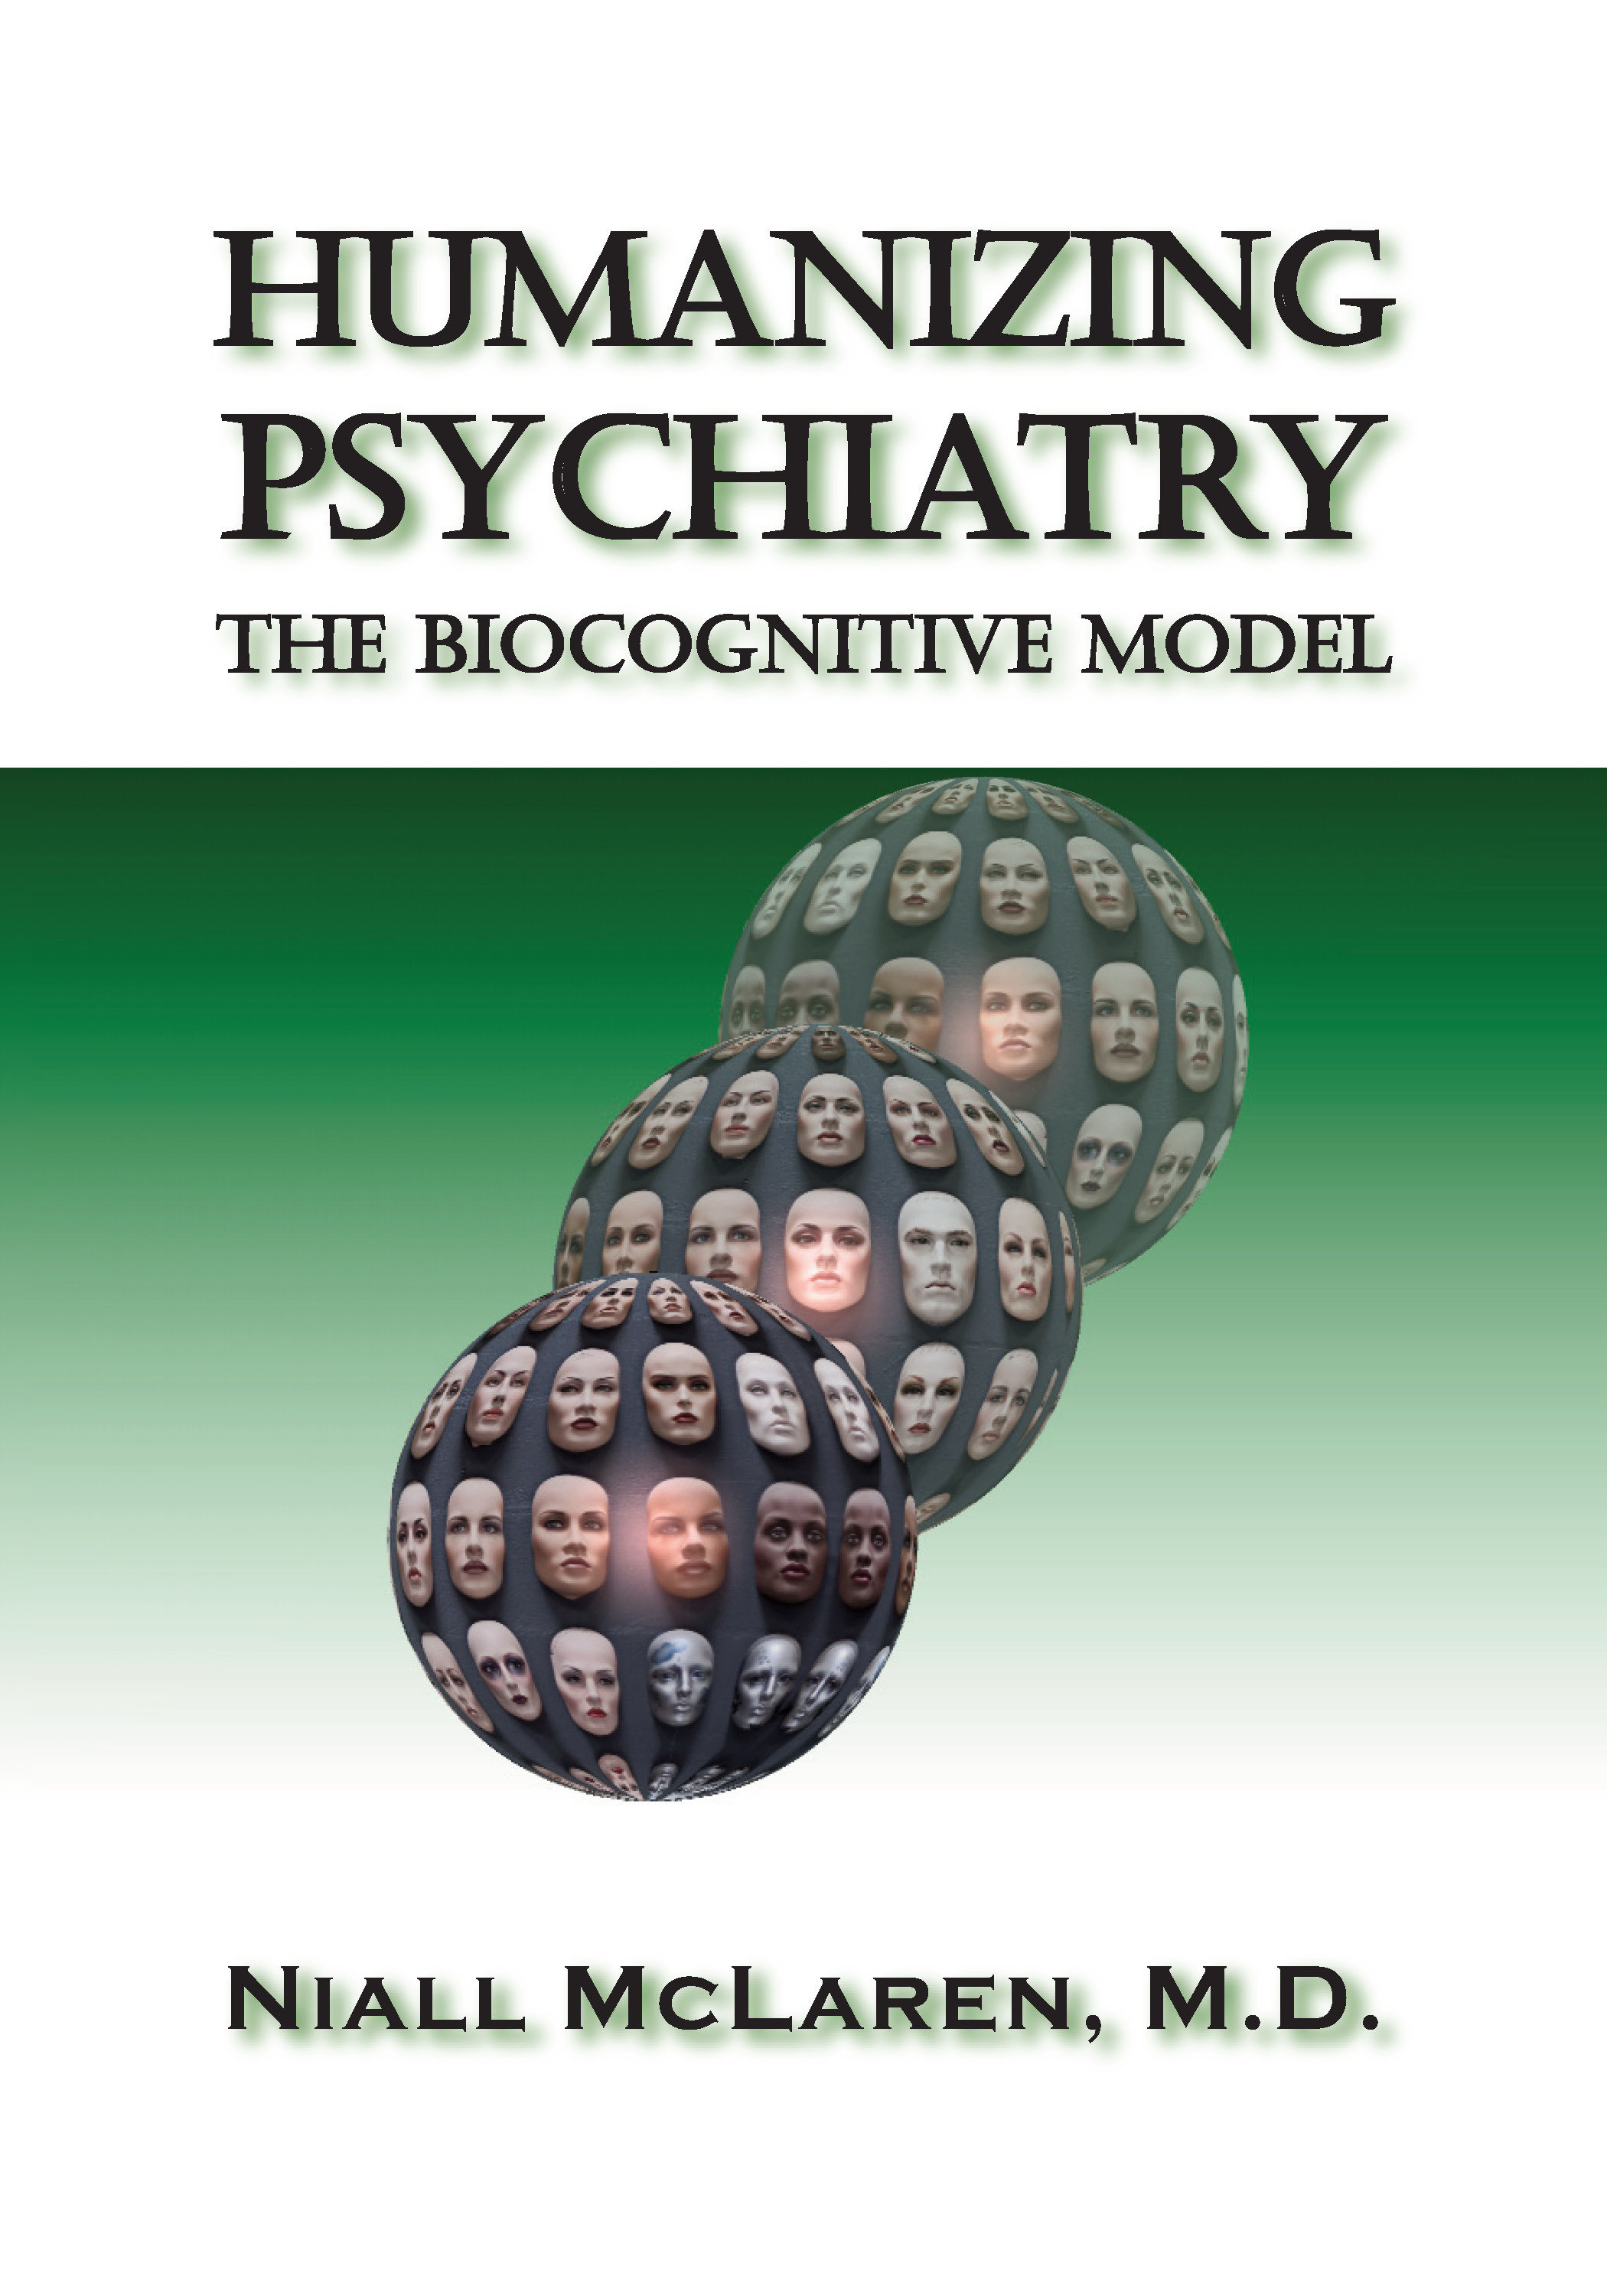 Humanizing Psychiatry 978-1-61599-011-5